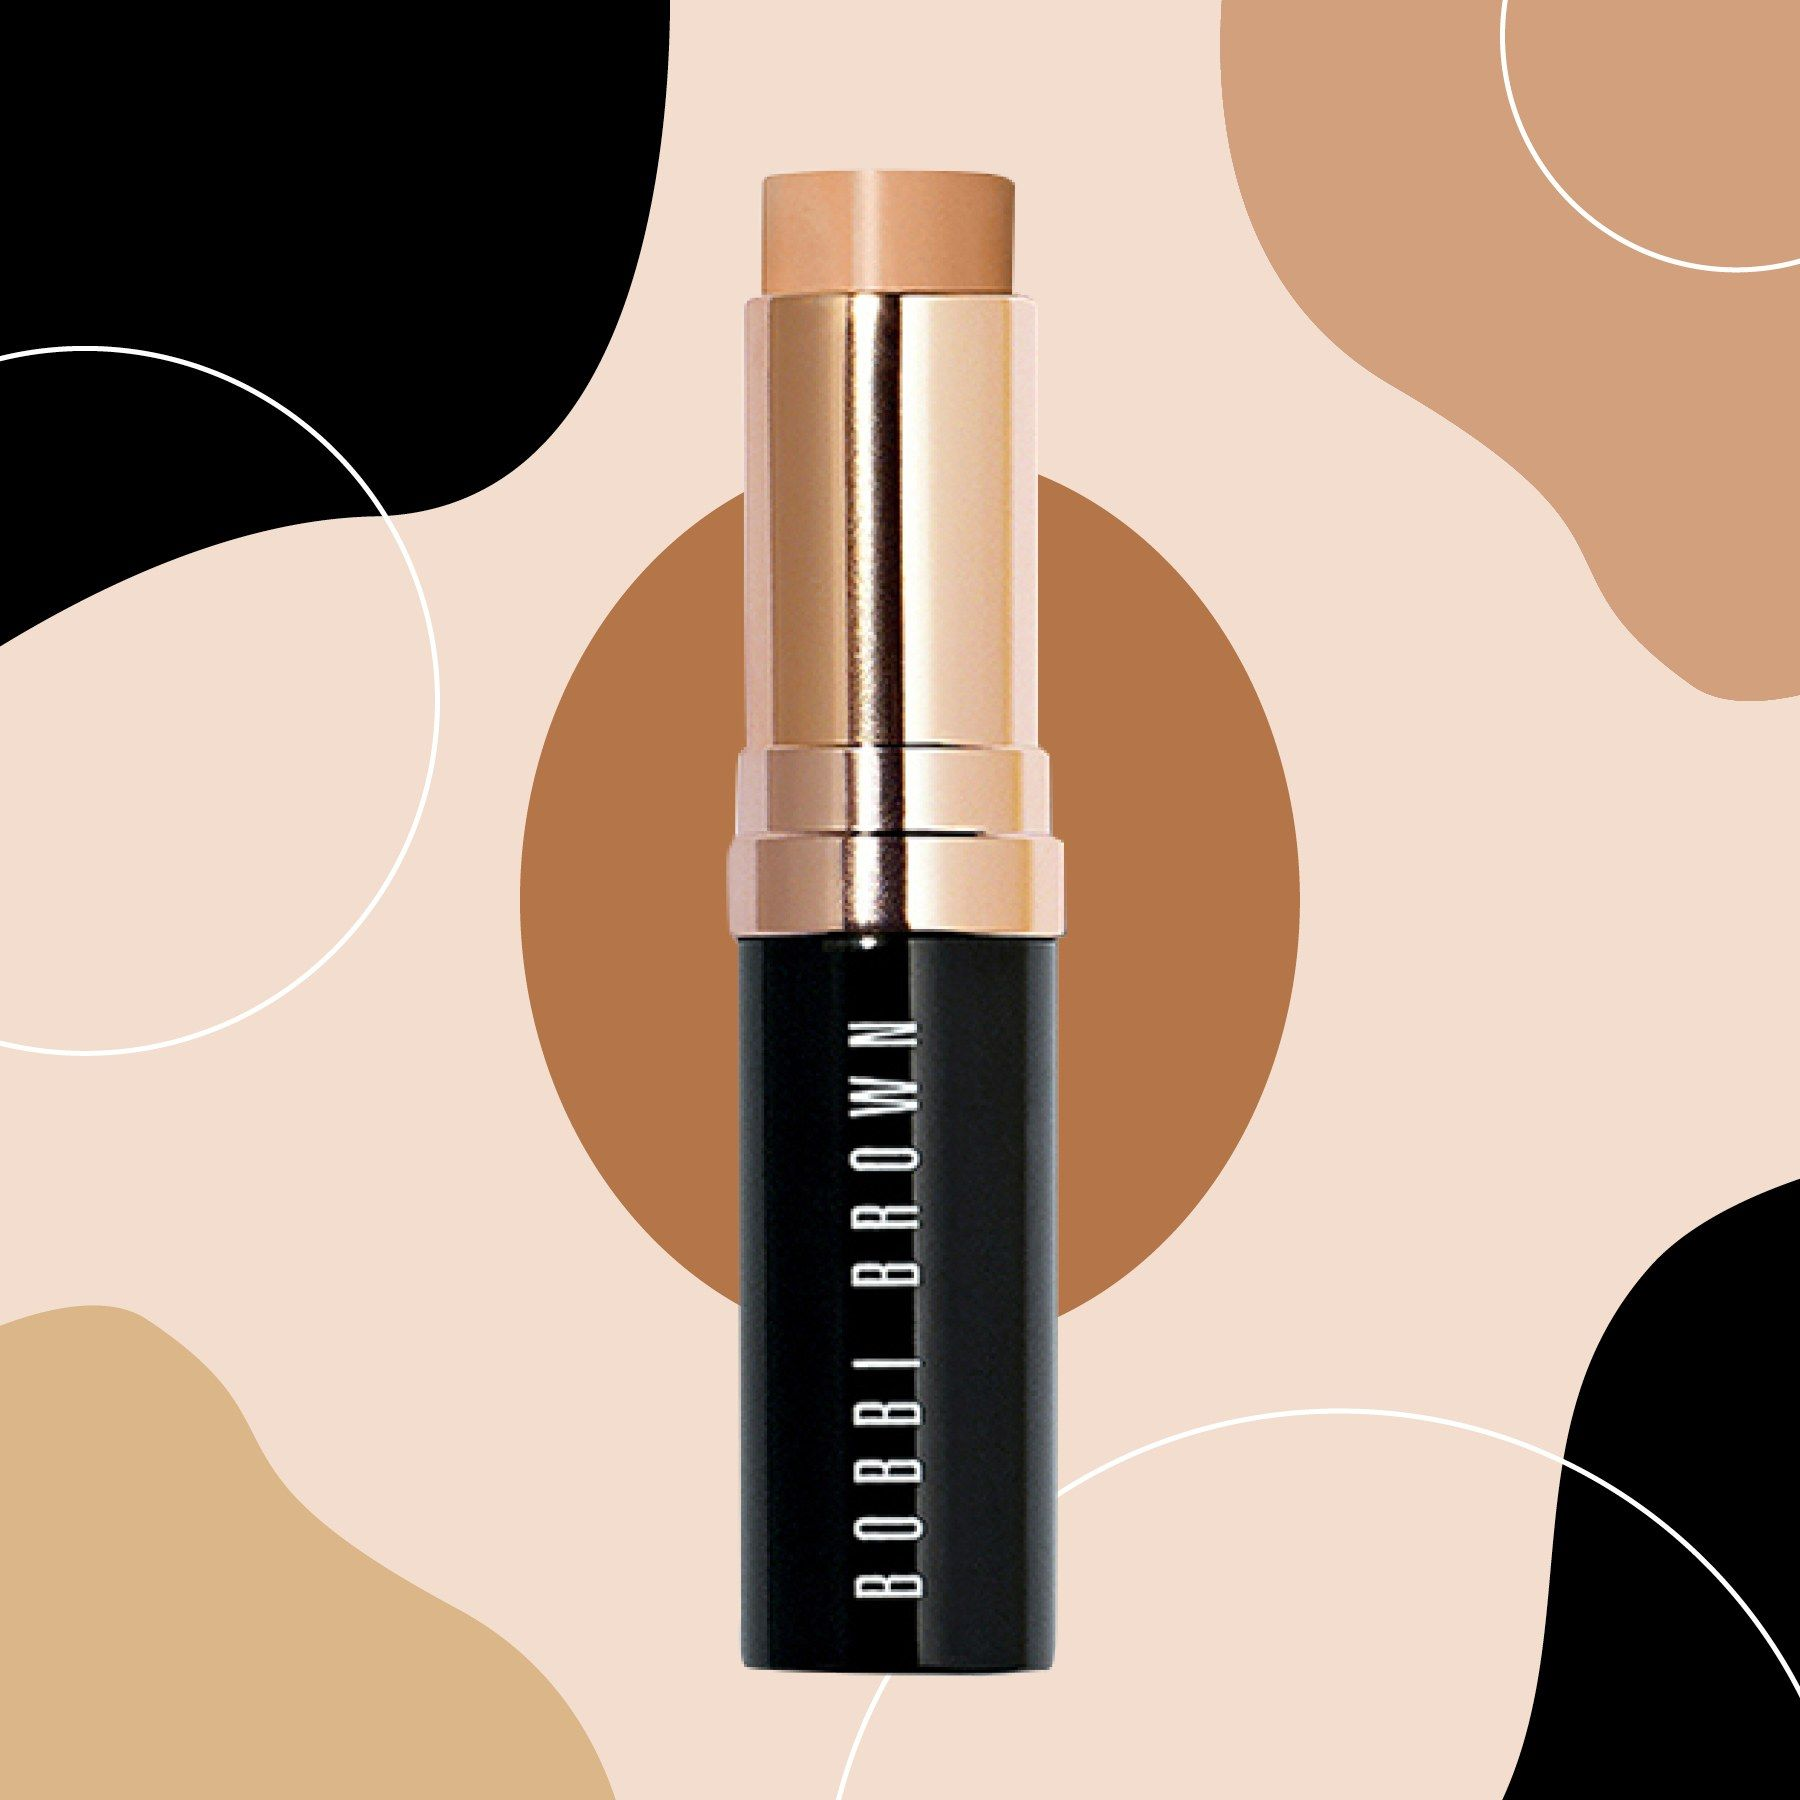 This Foundation Stick Makes My Face Look Instantly ...